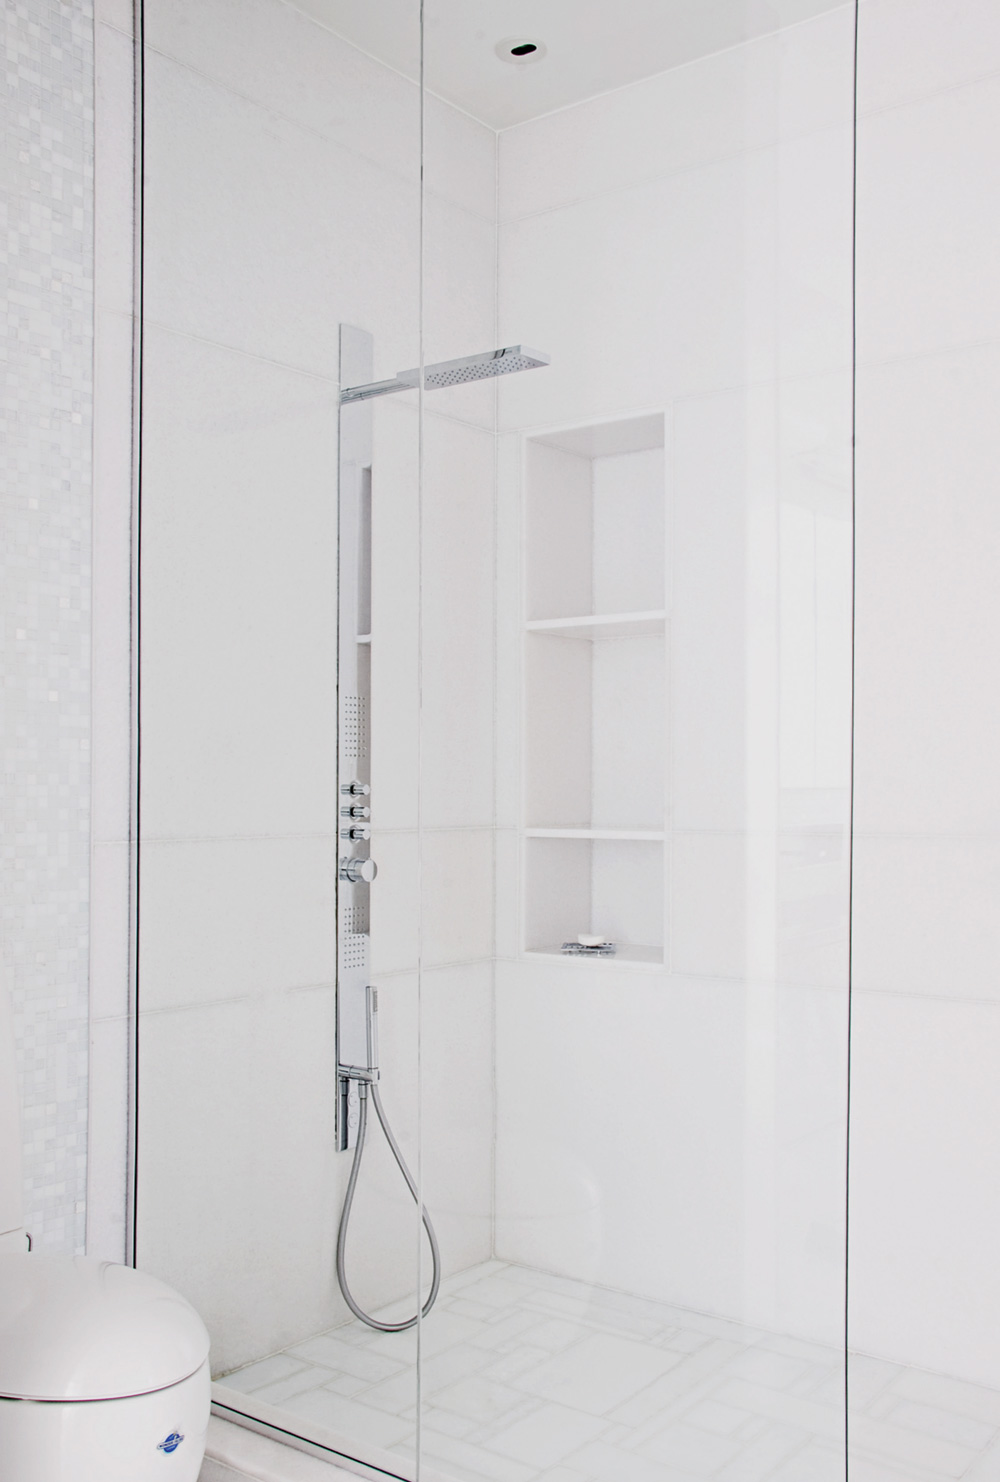 A minimalist shower of marble and glass stands beside an Alessi-Laufen toilet (Batimat) with its WonderGliss technology for easy cleaning.